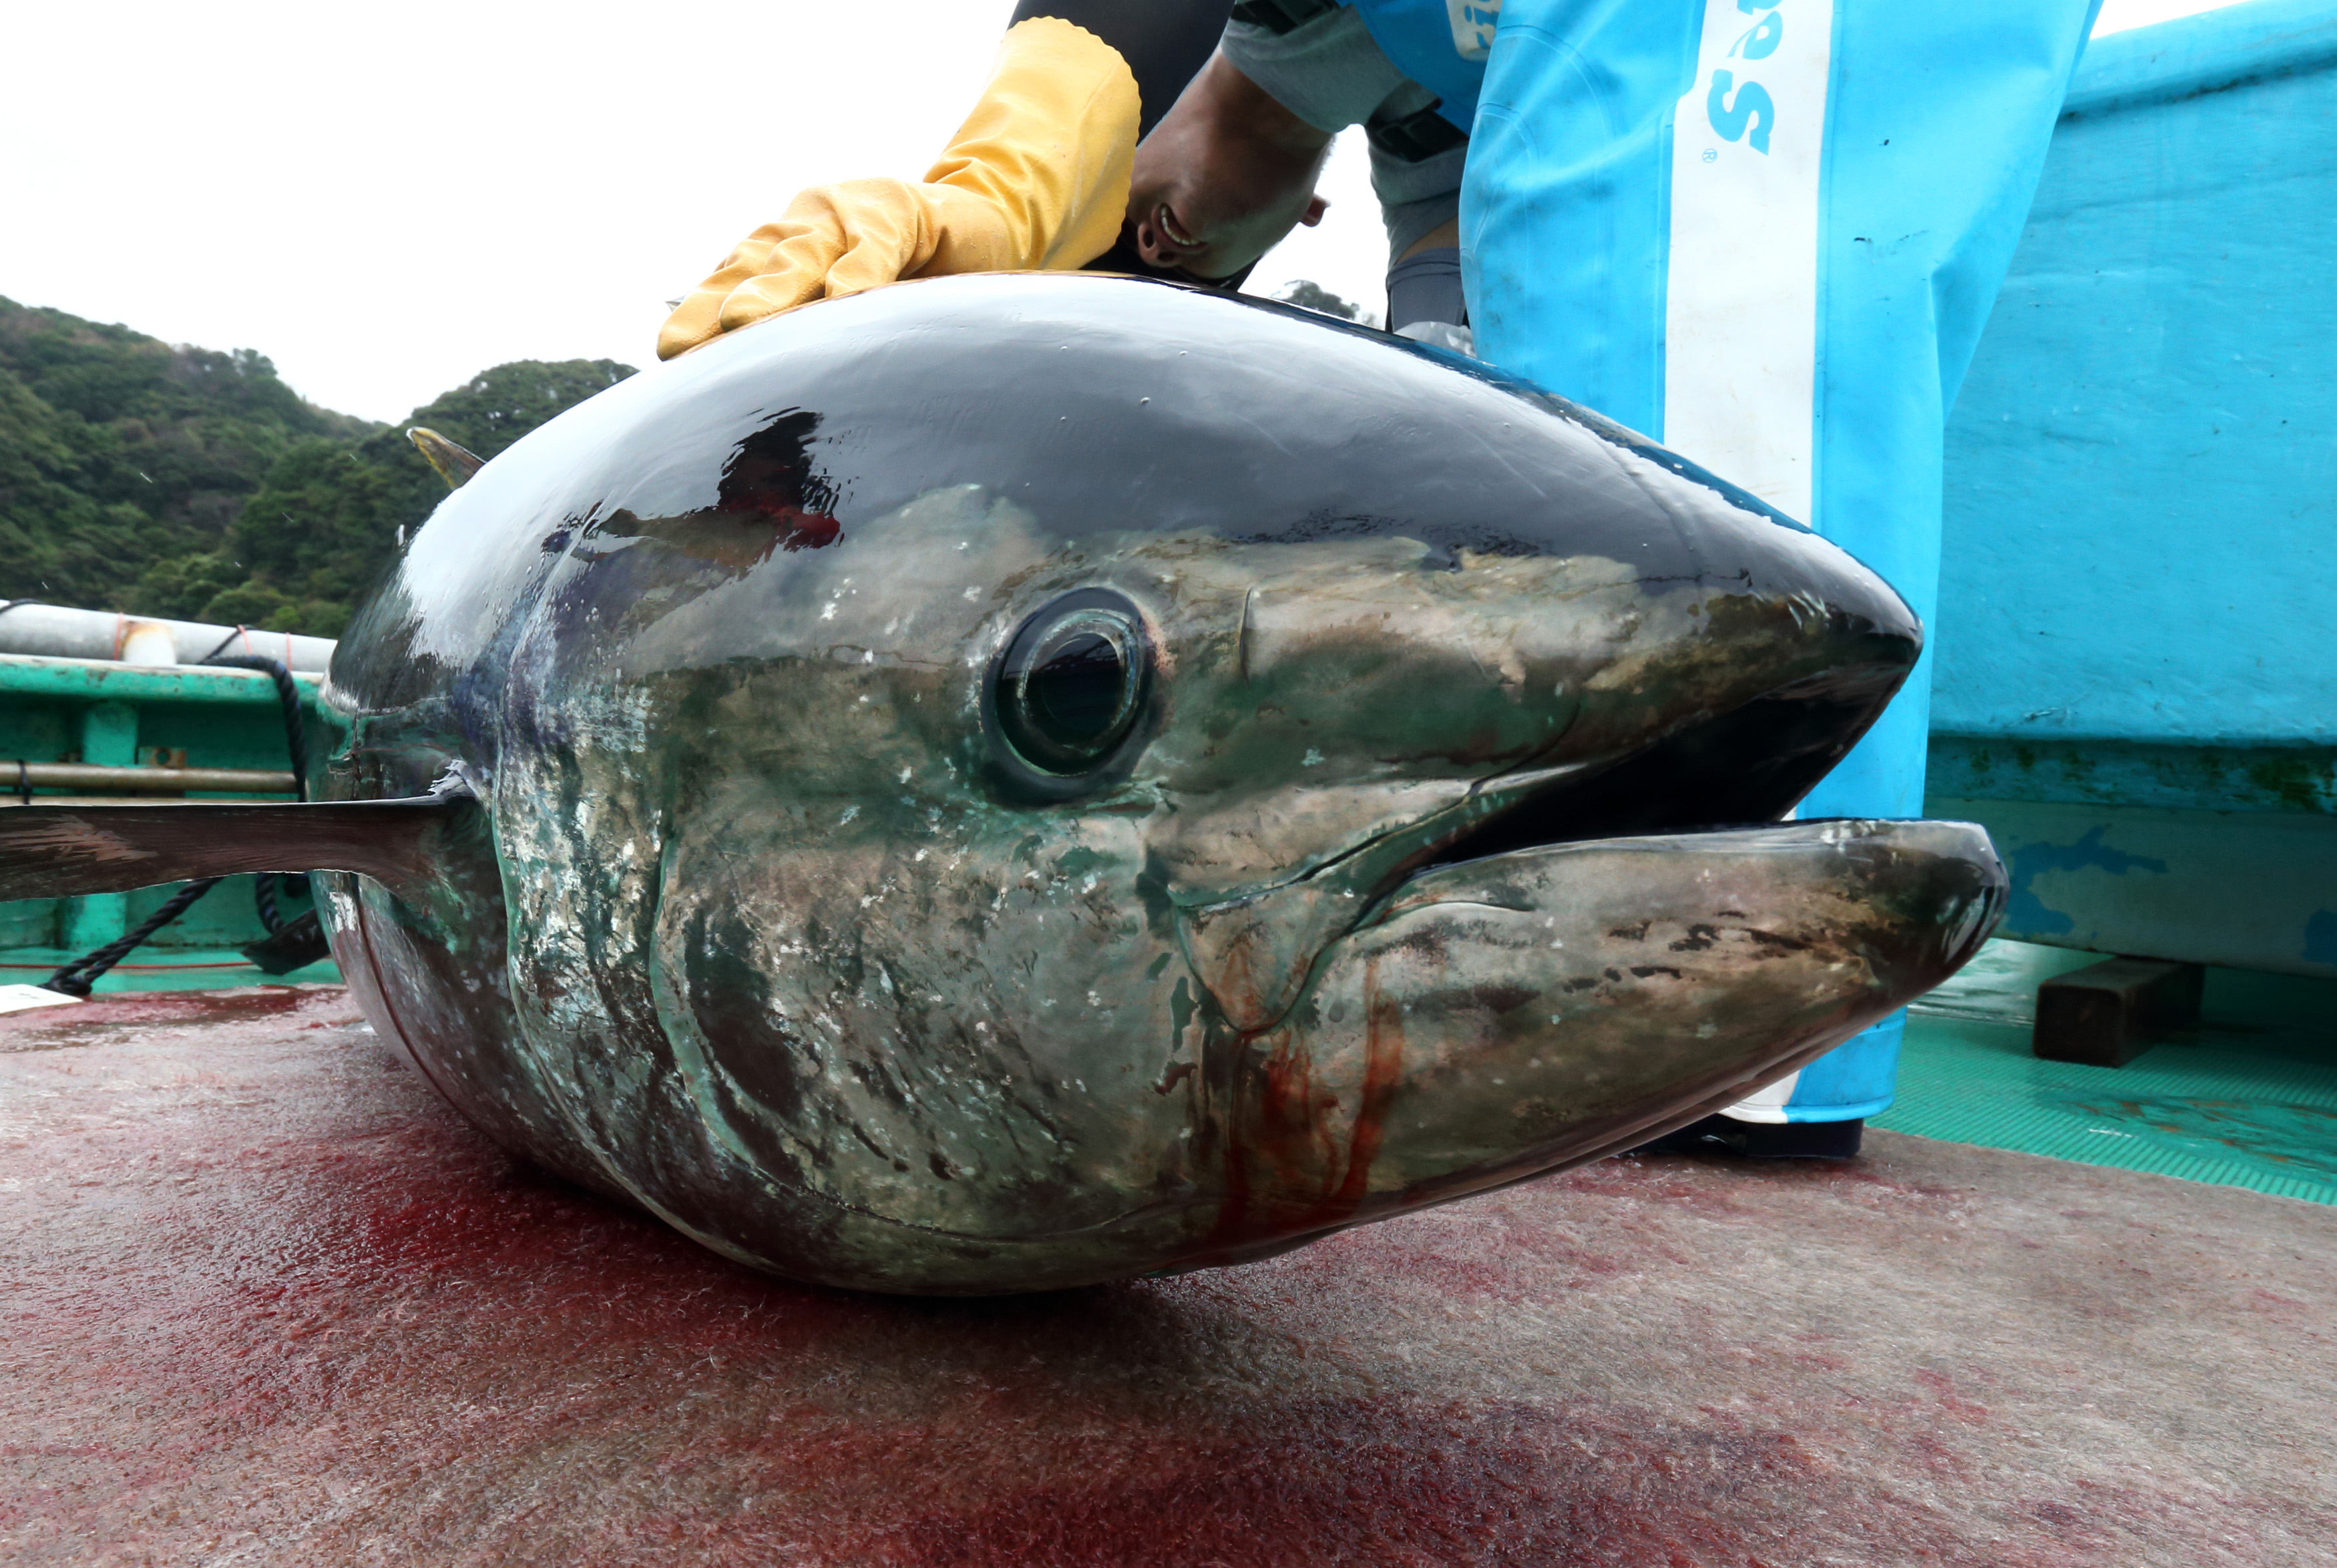 A farmed blue-fin tuna on board a boat at a fish farm operated by the laboratory in Kushimoto, Wakayama Prefecture, Japan, on Tuesday, Oct. 21, 2014.